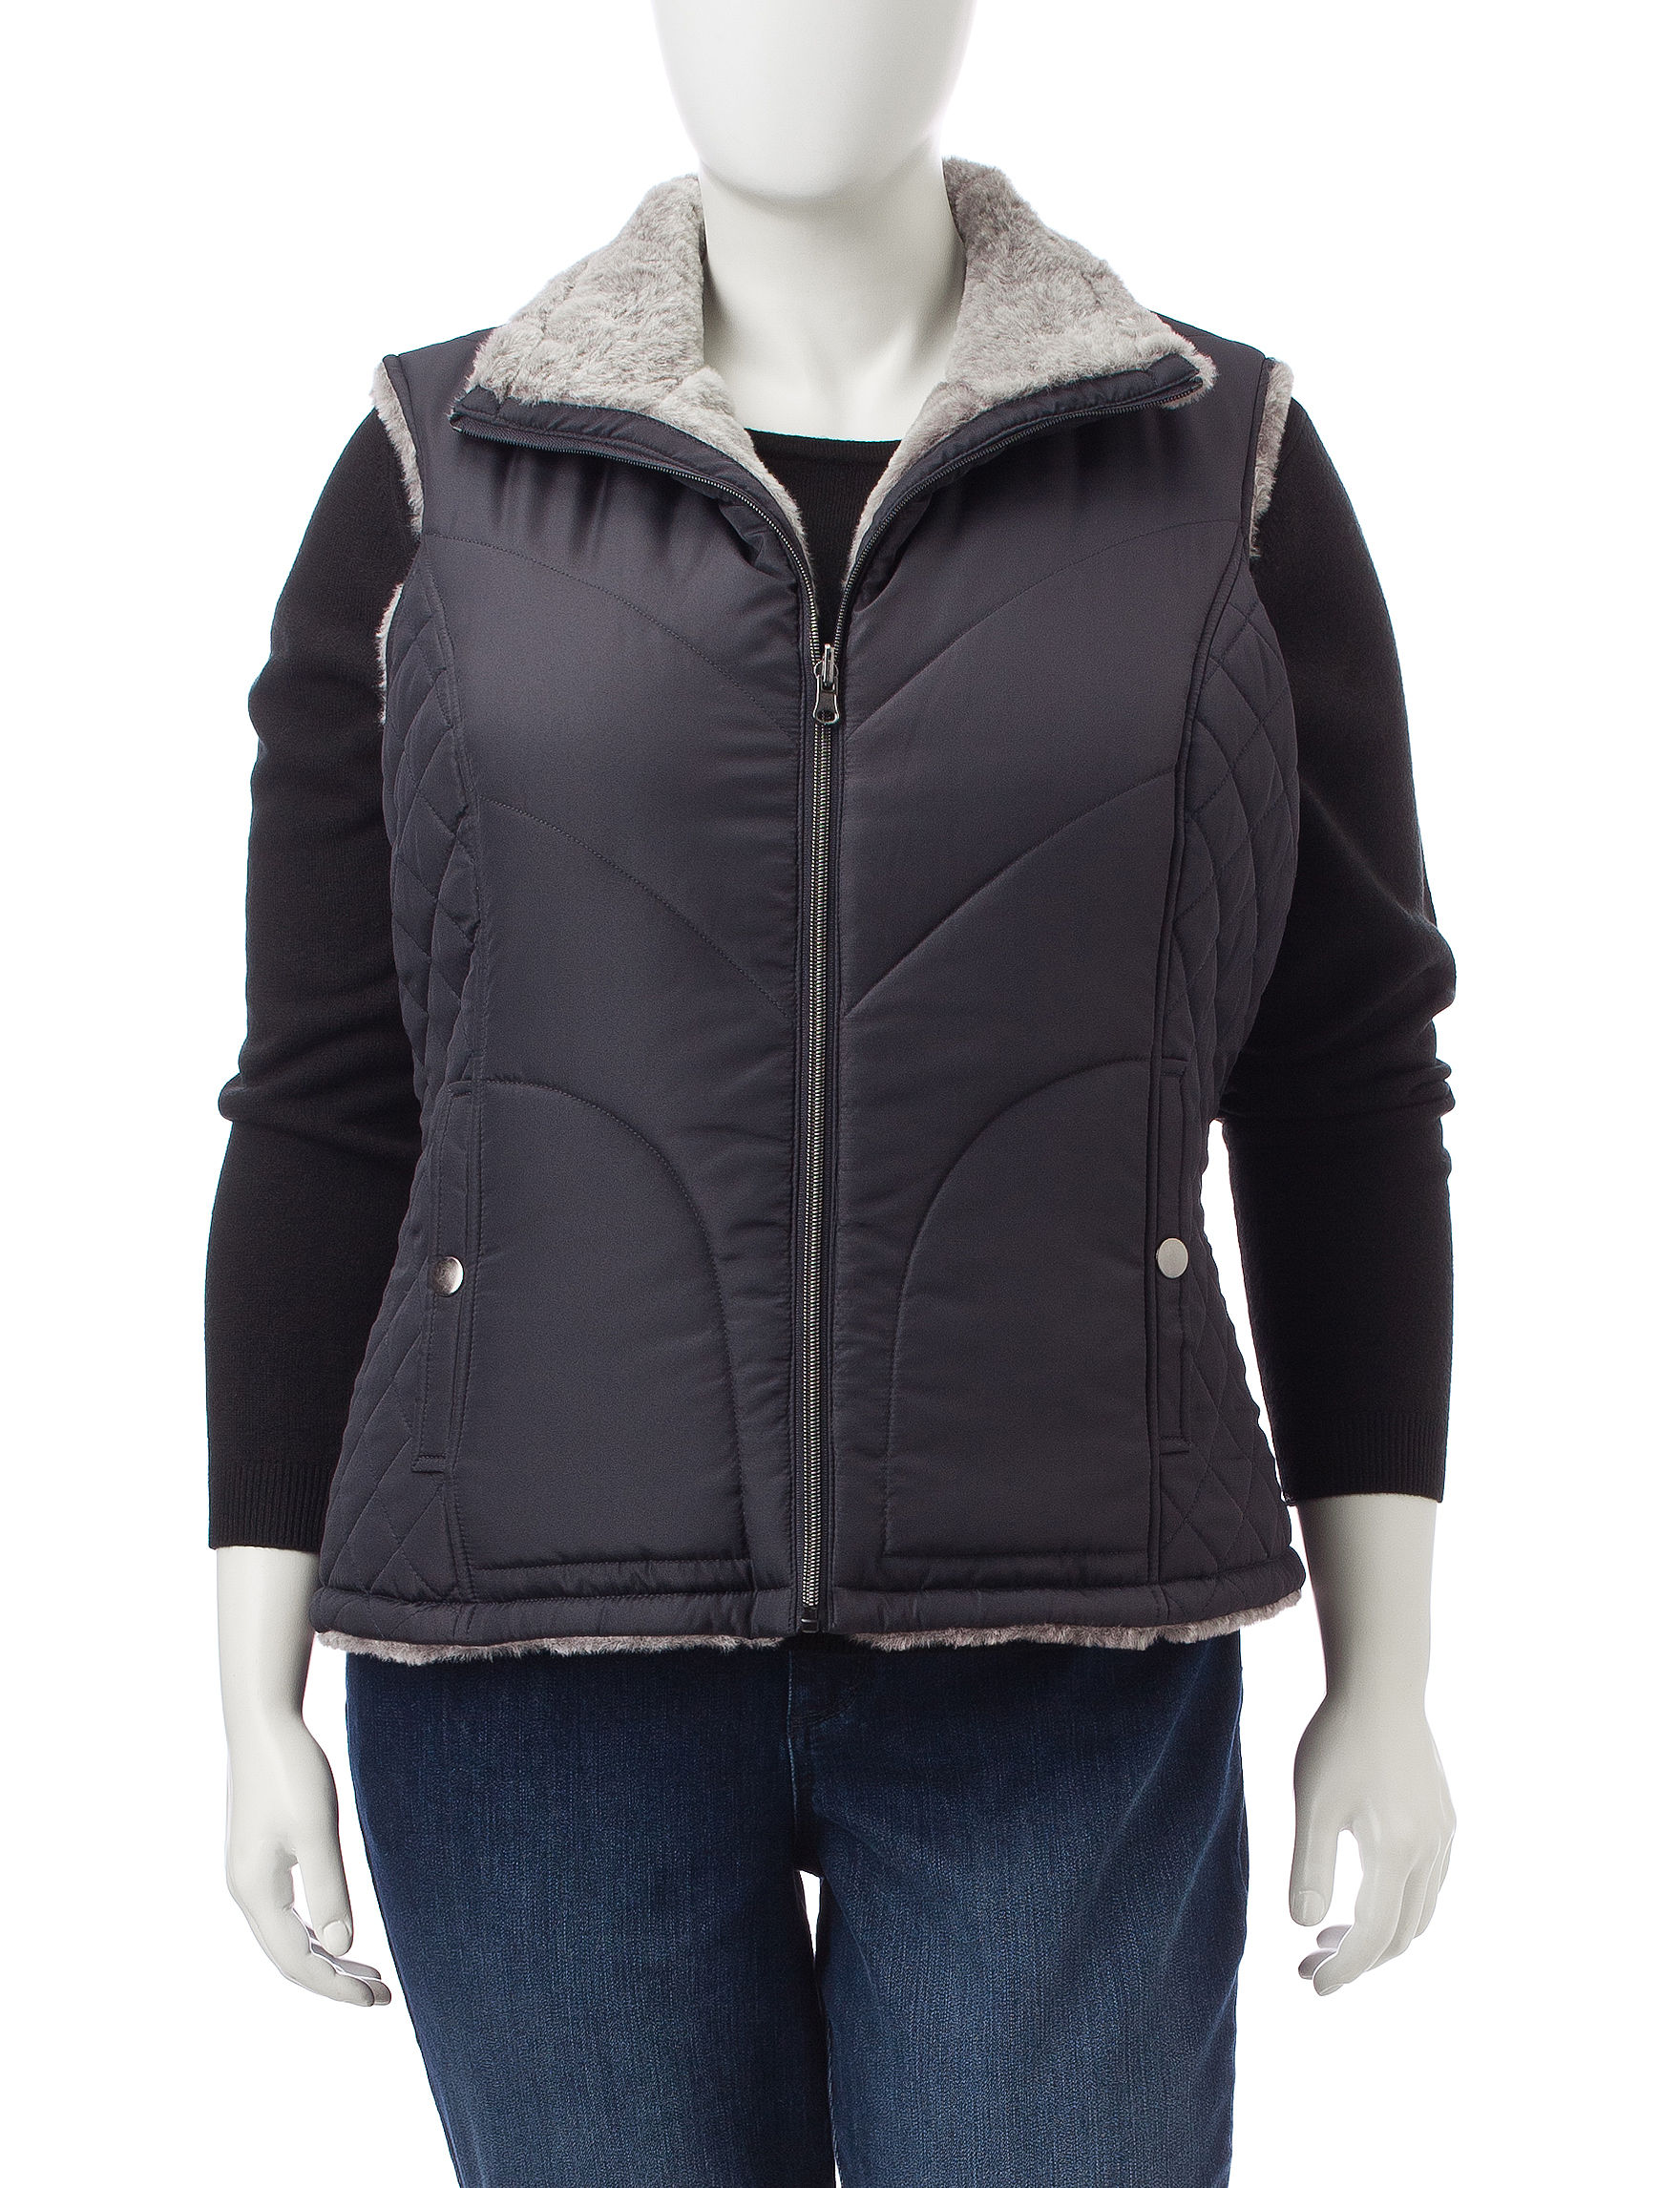 Valerie Stevens Steel Puffer & Quilted Jackets